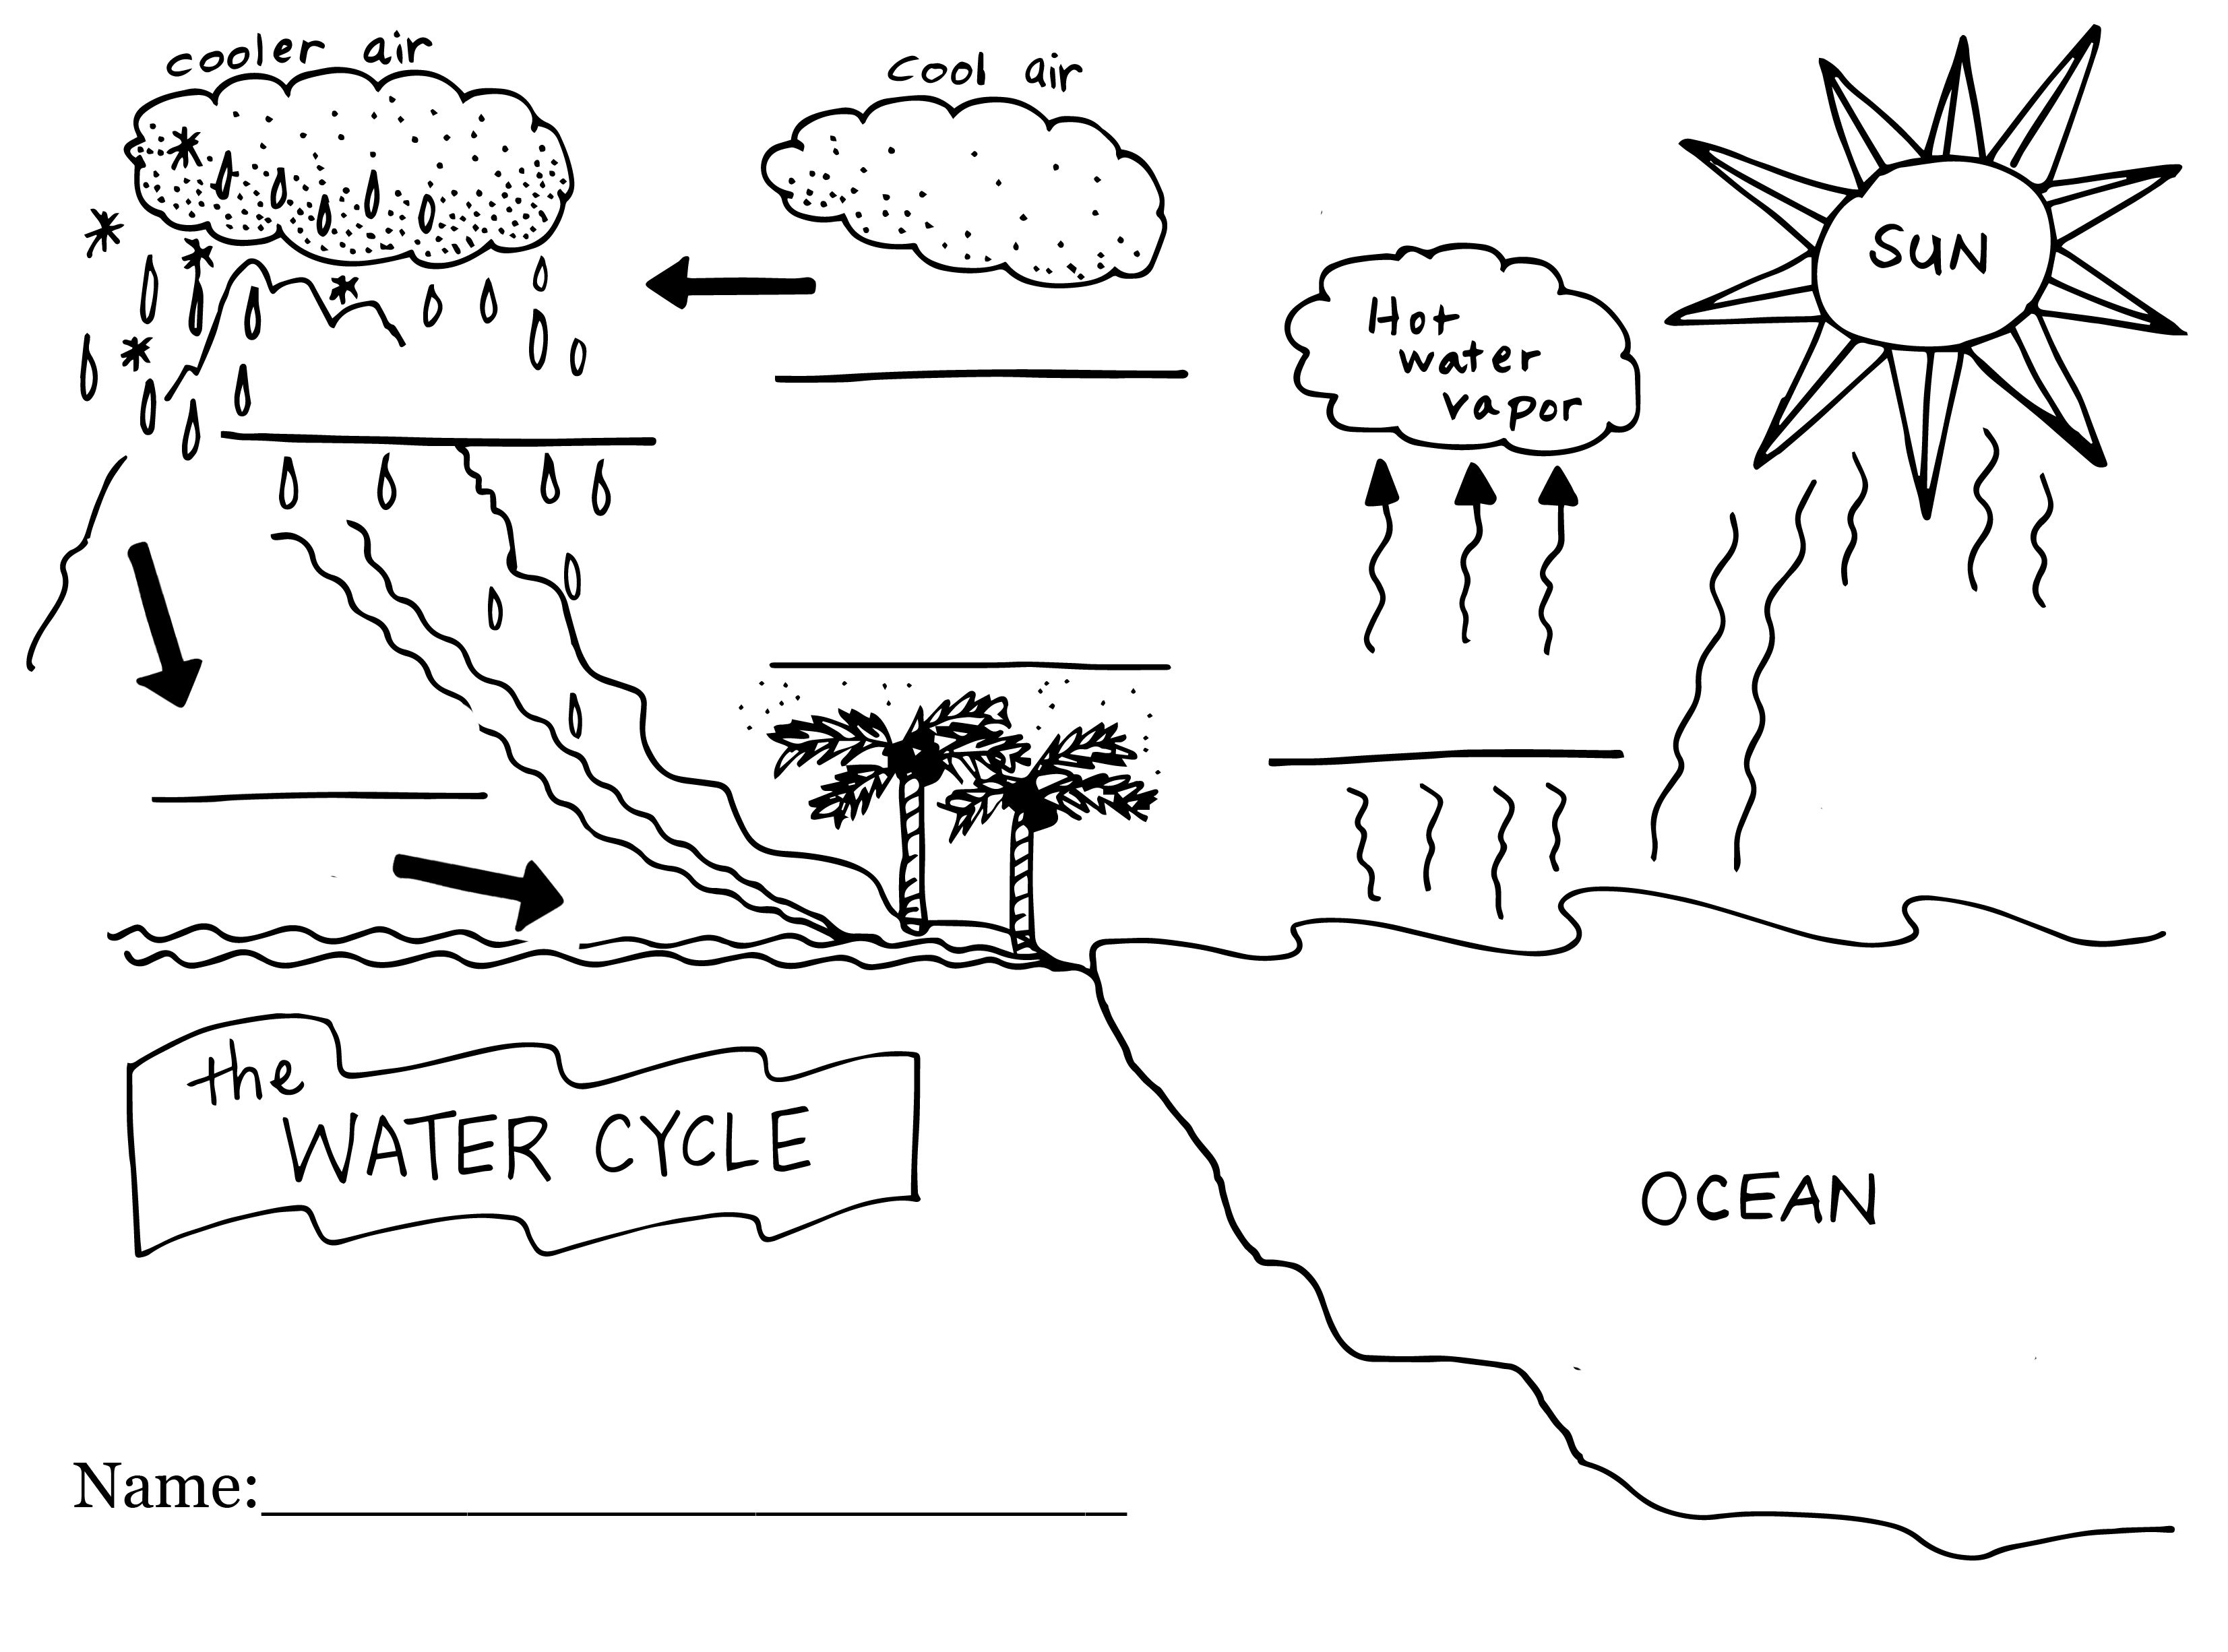 Worksheets Water Cycle Worksheets water cycle coloring pages cd357 reading meganghurley ed 554 computers amp technology in